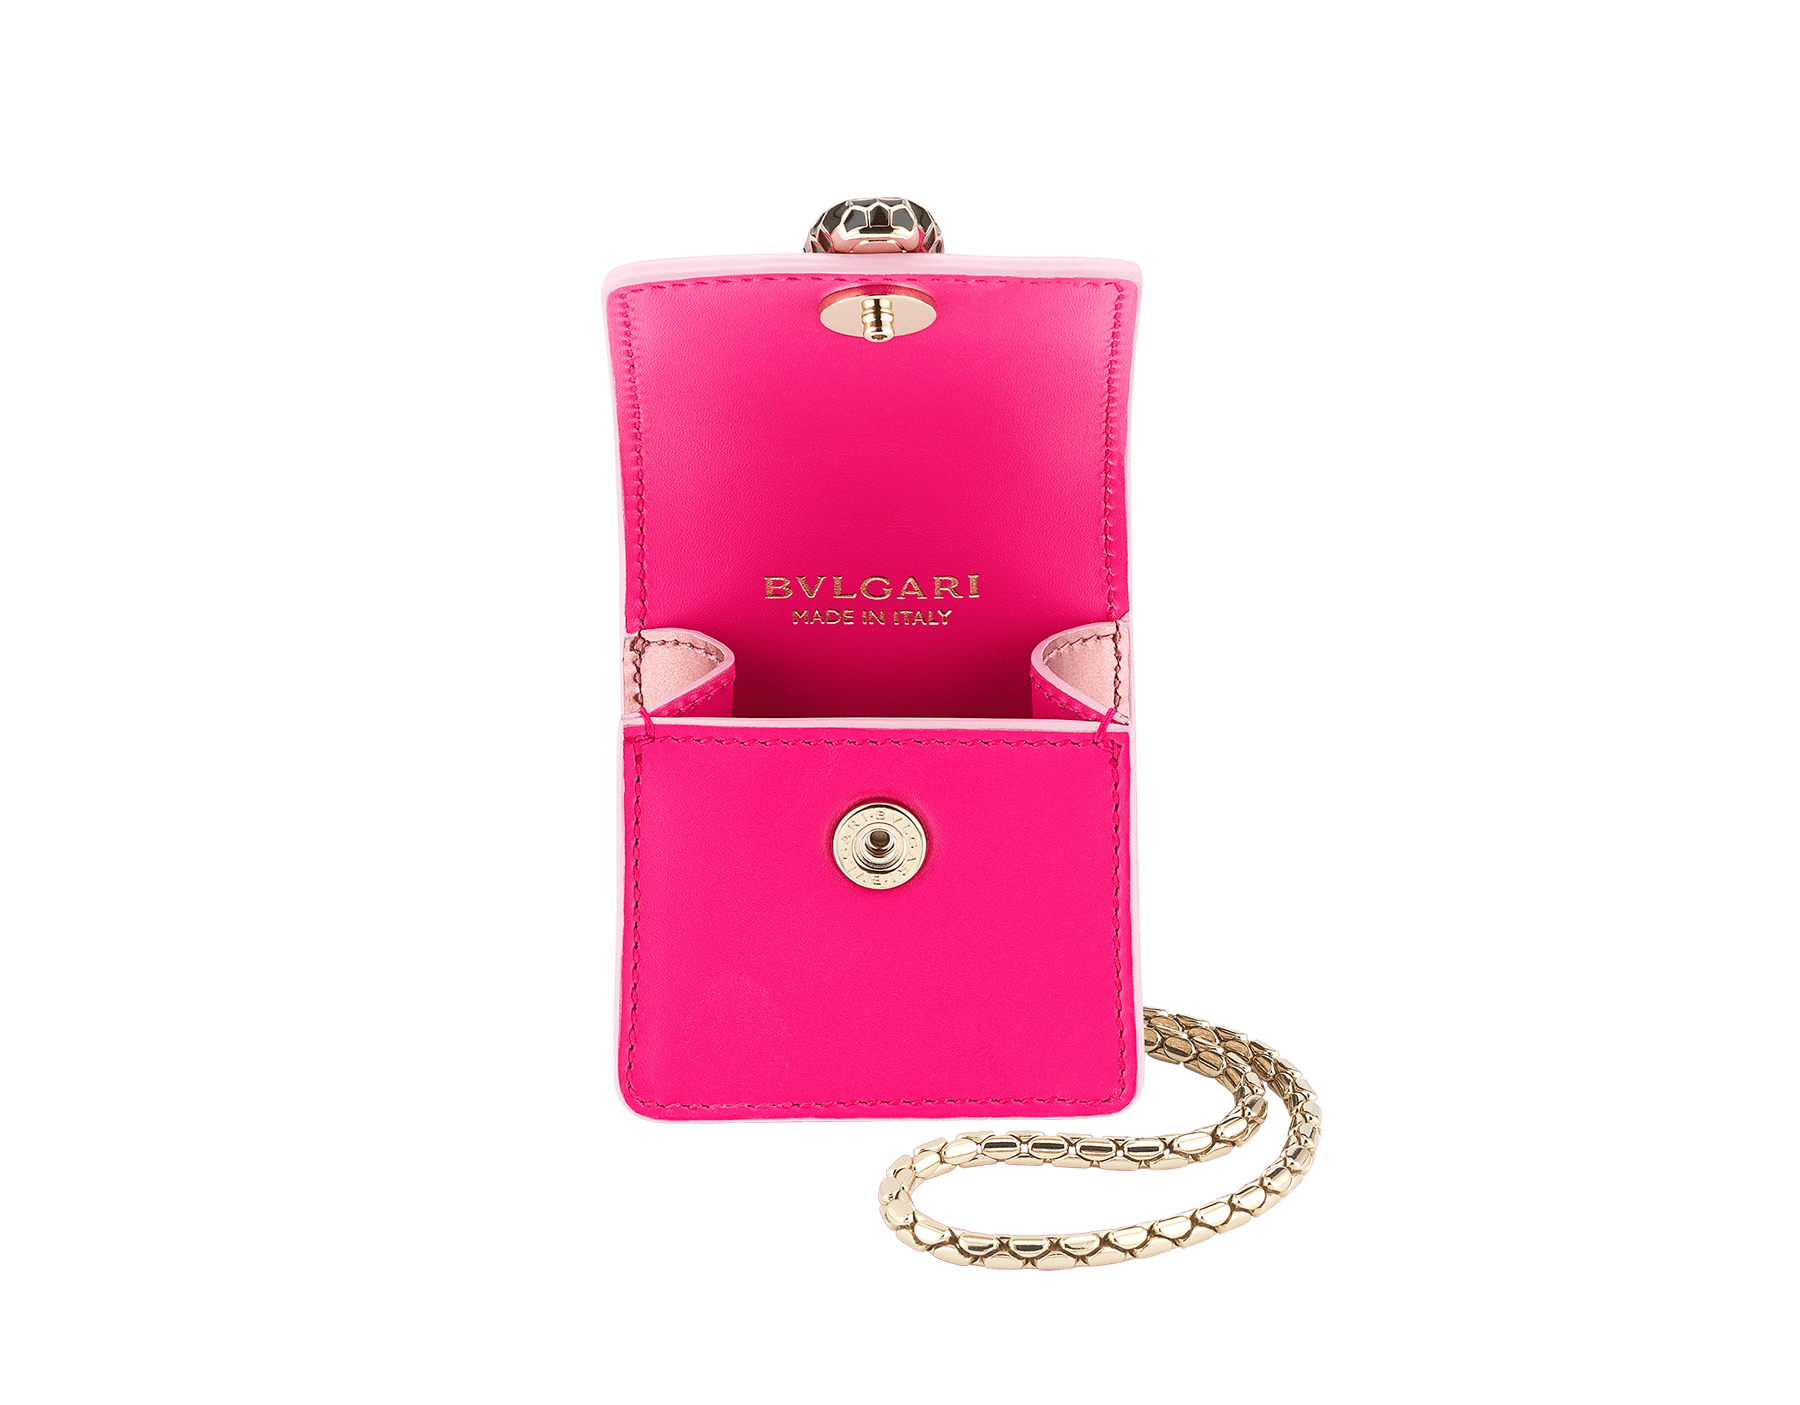 Serpenti Forever Holiday Edition AirPods holder in flash amethyst calf leather and rose quartz brushed metallic calf leather. Snakehead closure in light gold plated brass embellished with black and sakura pink enamel, and black onyx eyes. 289480 image 2